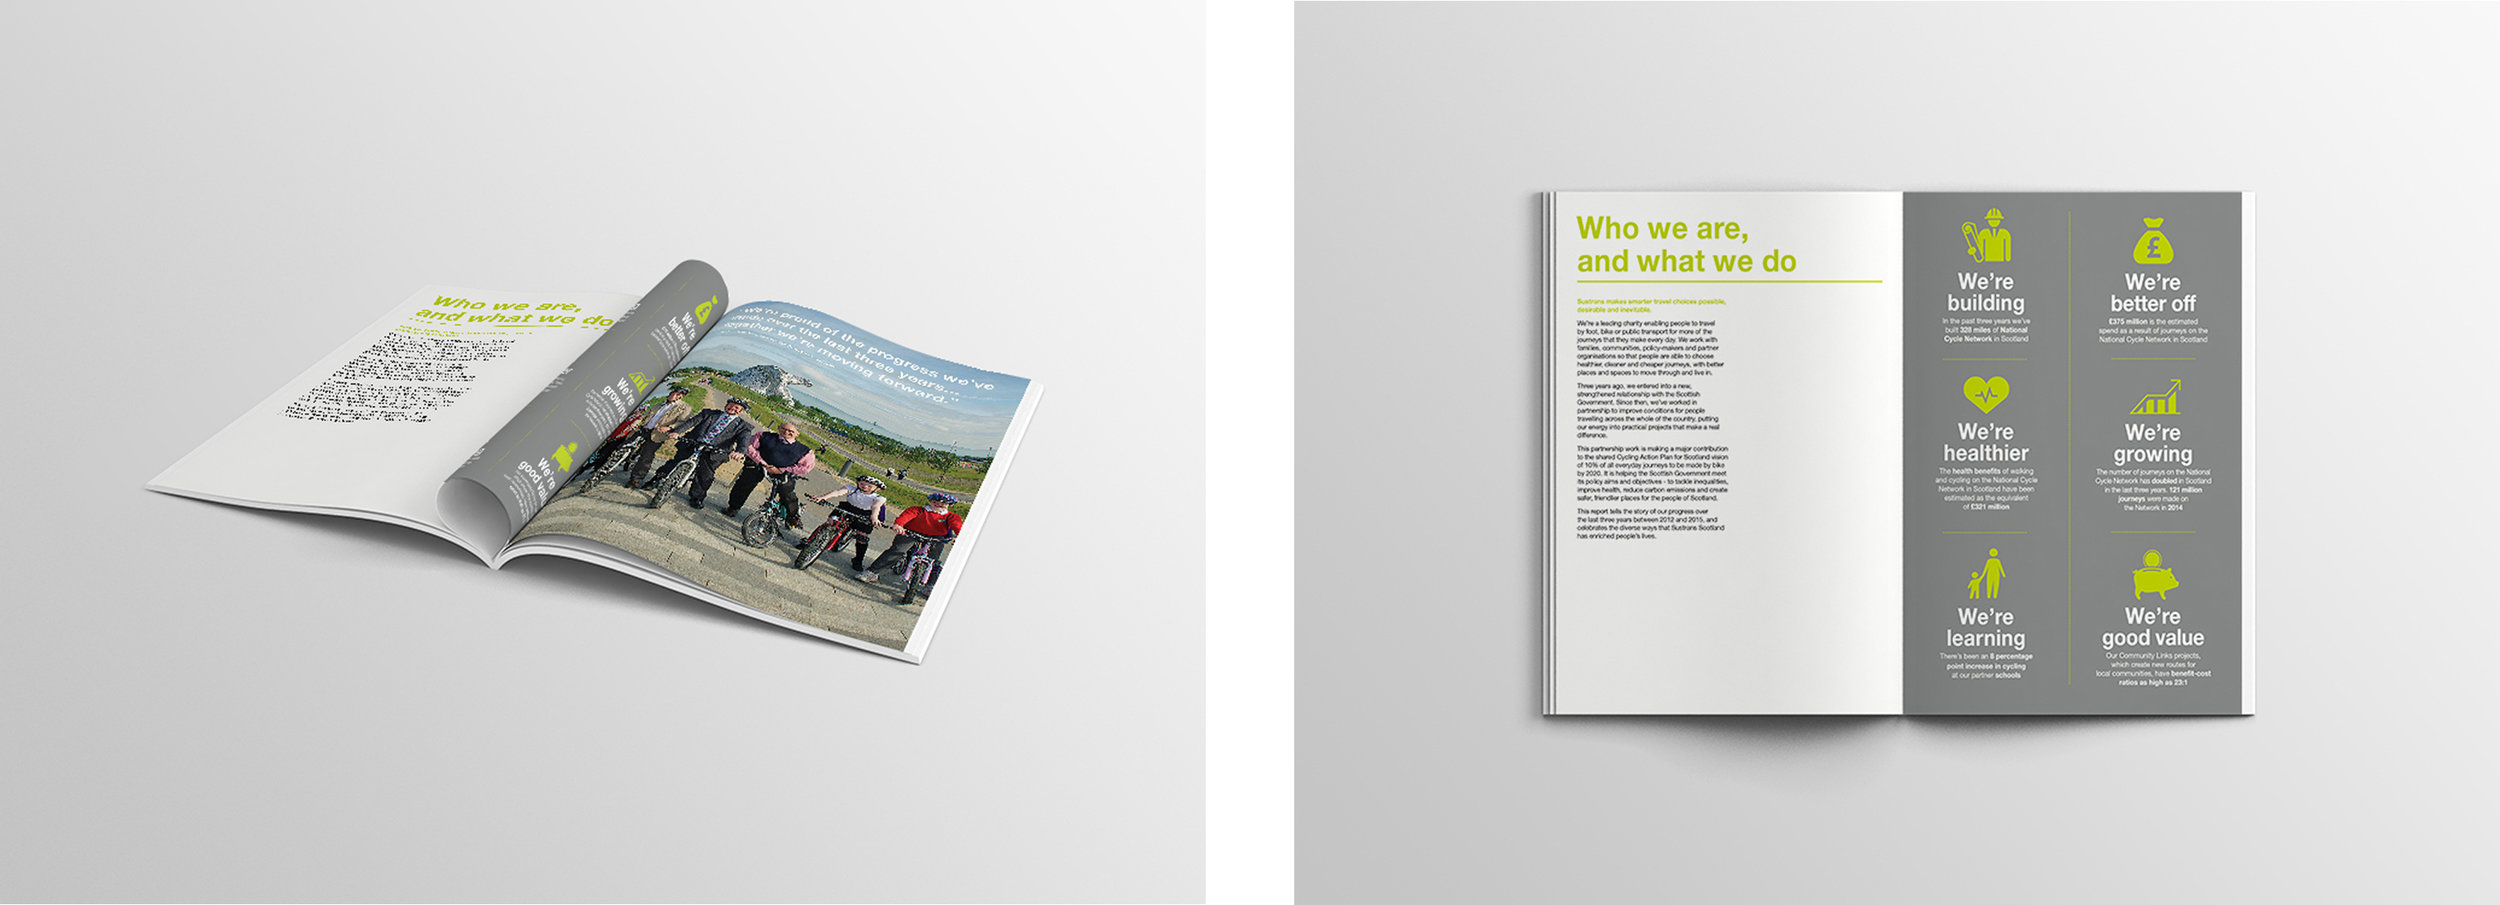 sustrans-three-year-review-double-01.jpg